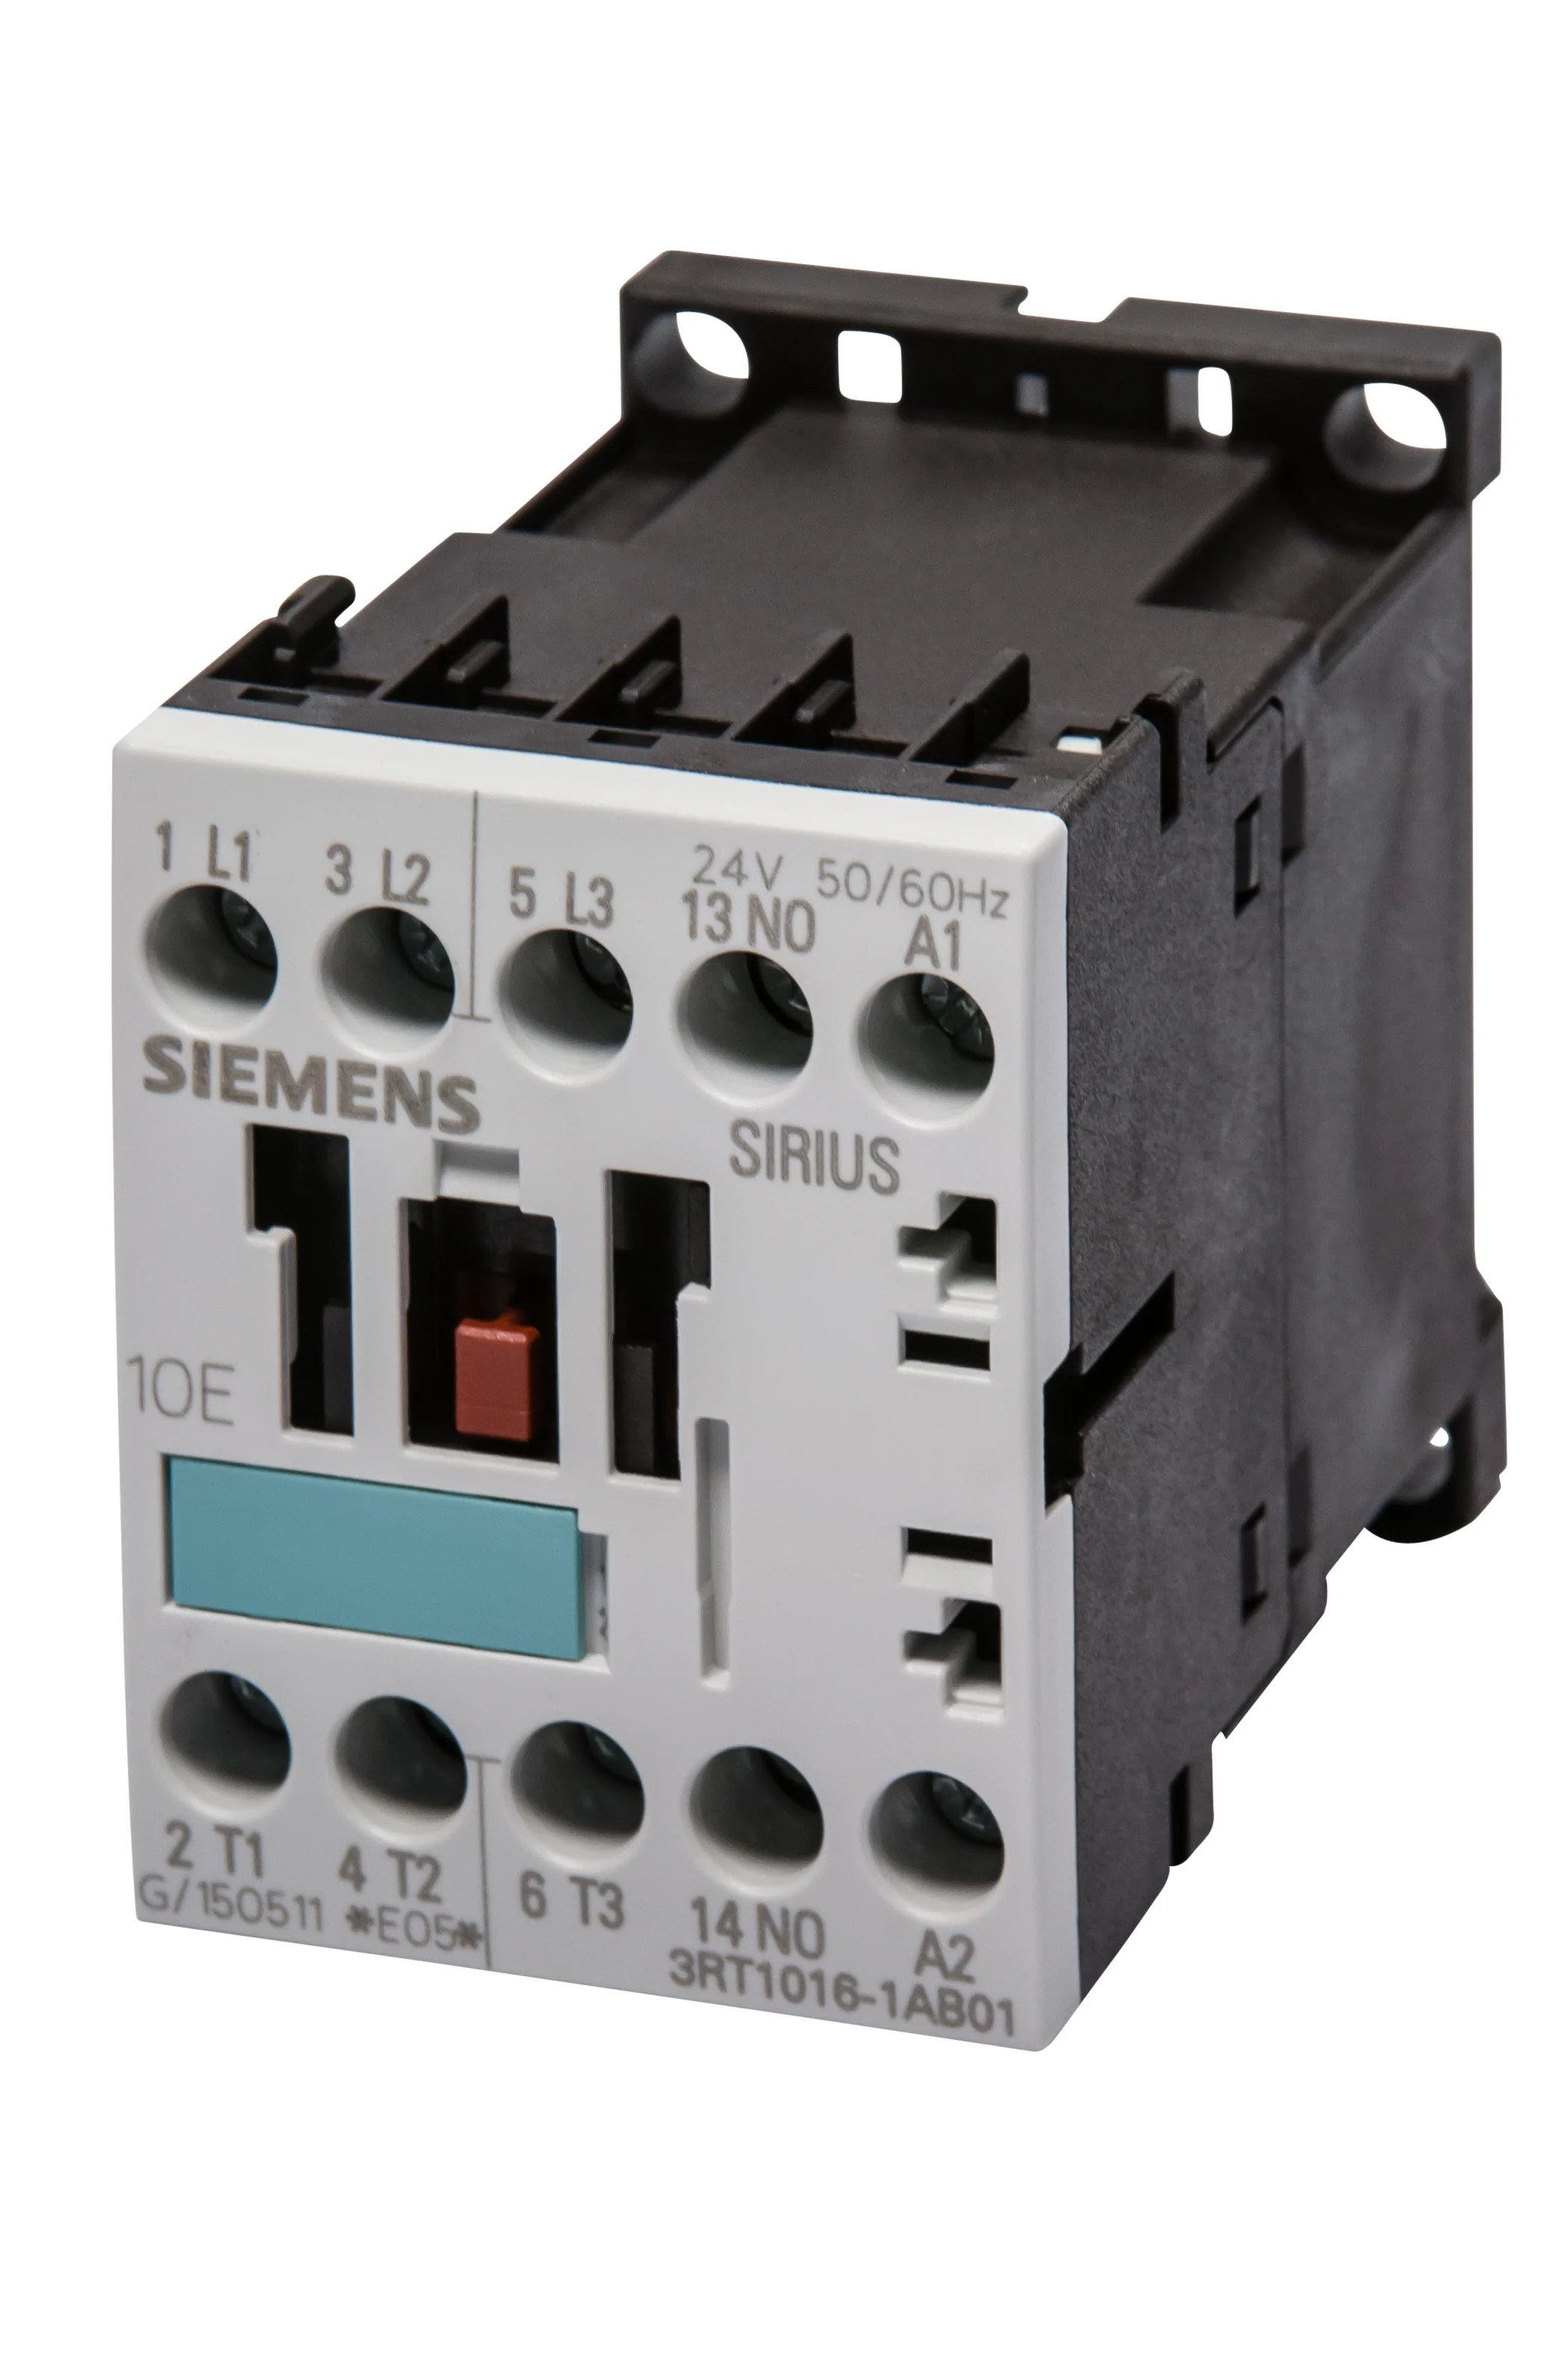 1 phase contactor with overload wiring diagram carrier programmable thermostat 3rt1016-1a siemens sirius contactors